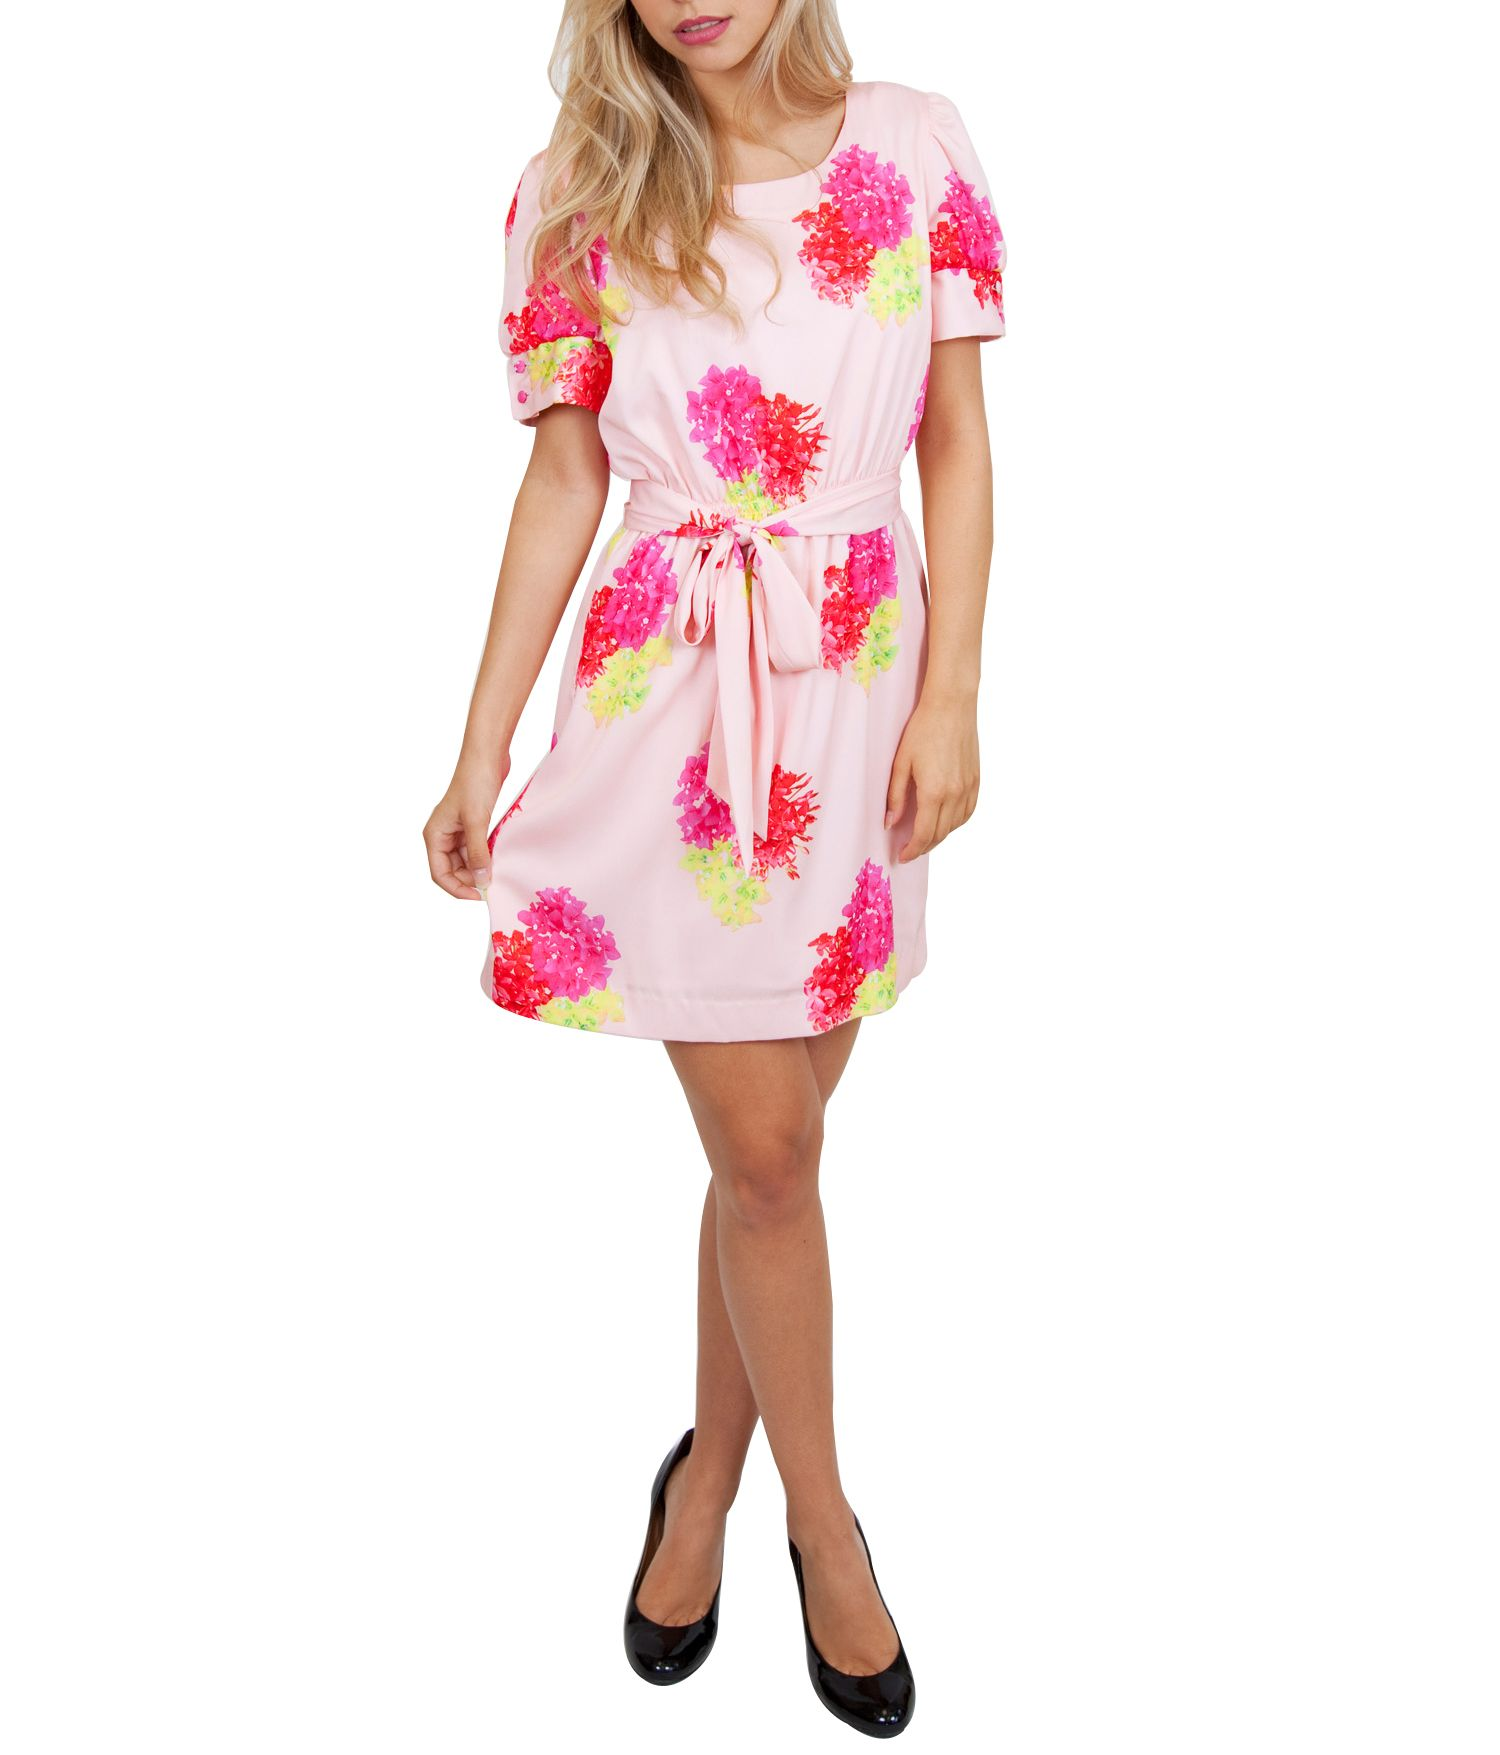 Tropical neon floral dress